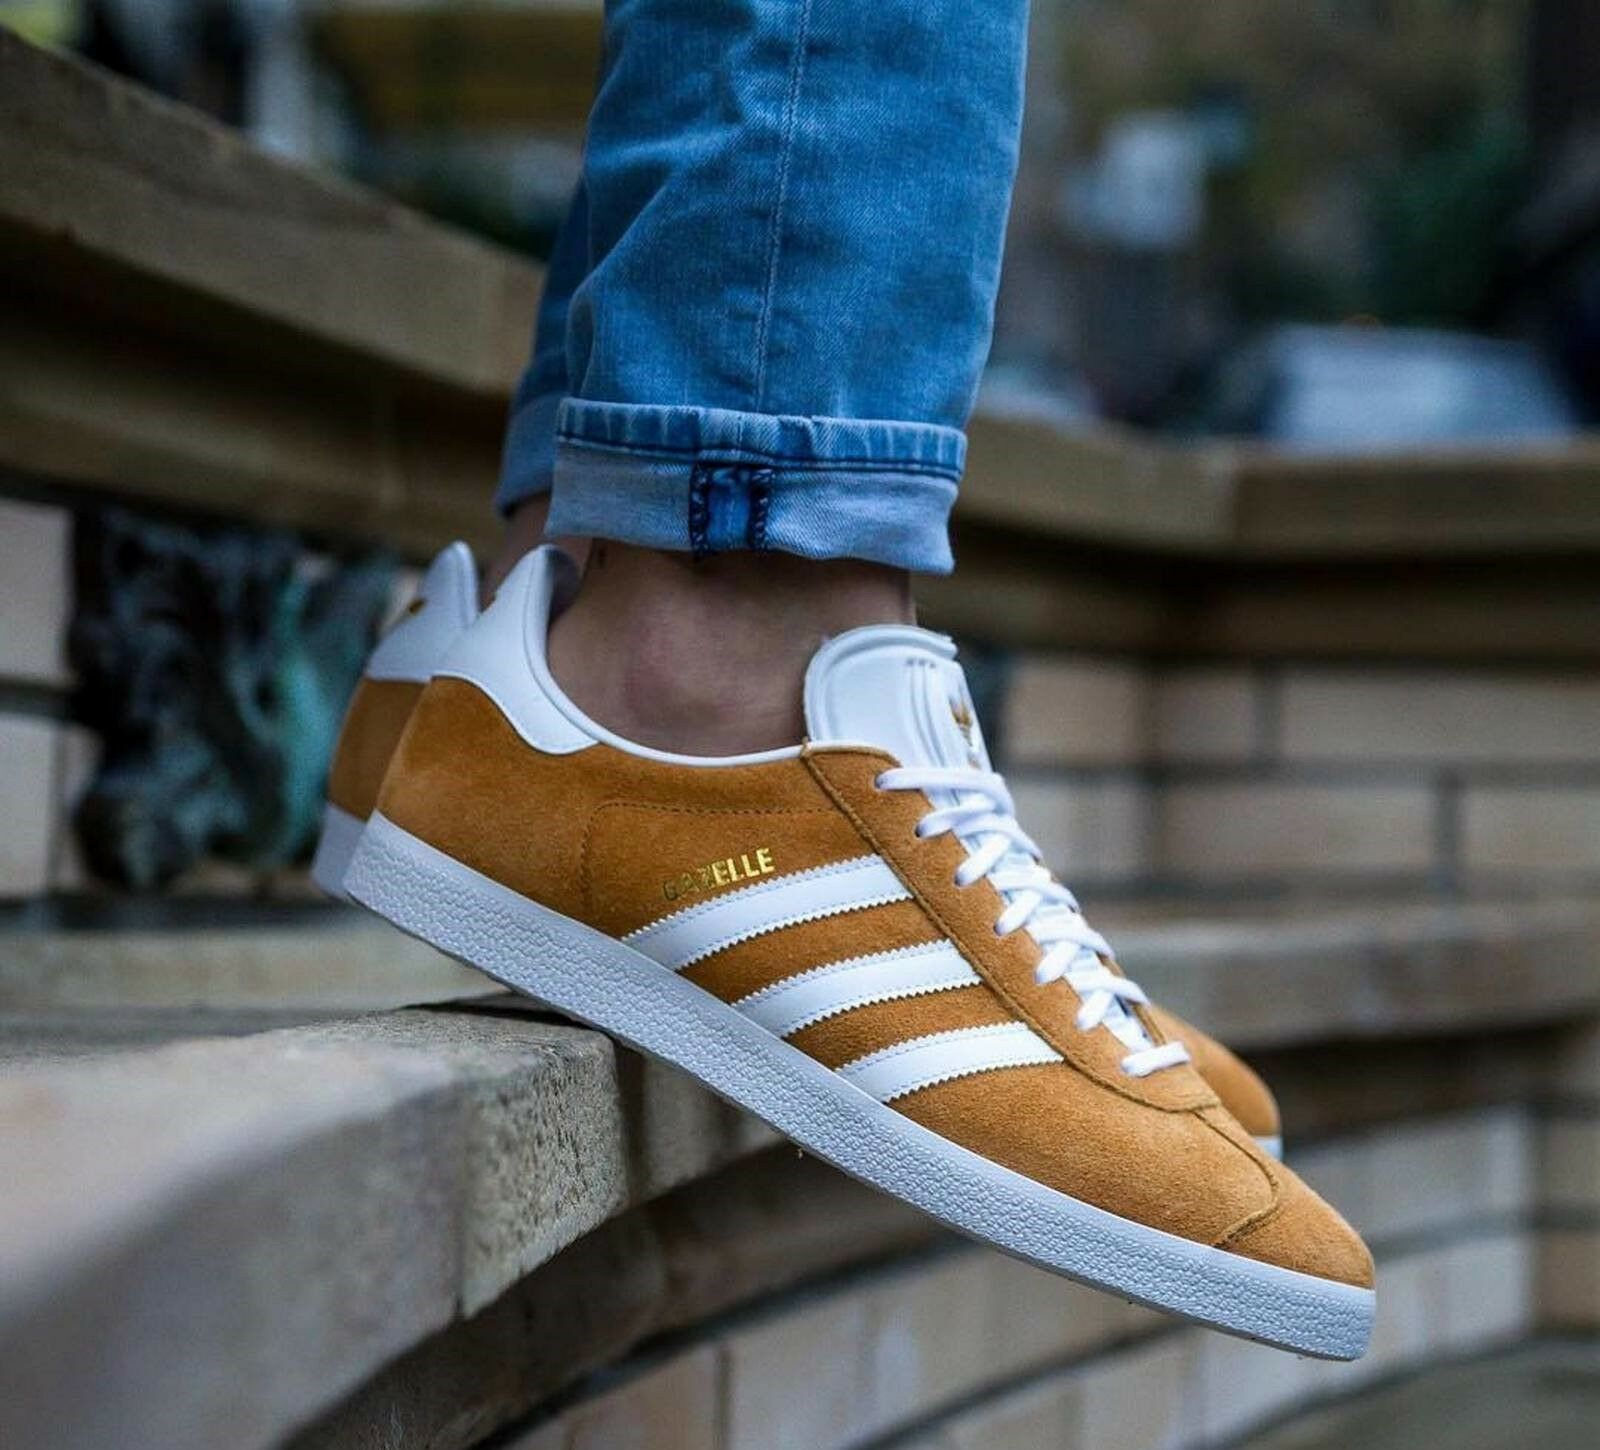 BNWB & Genuine Adidas Originals ® Gazelle Mesa Suede Trainers UK Größe 6